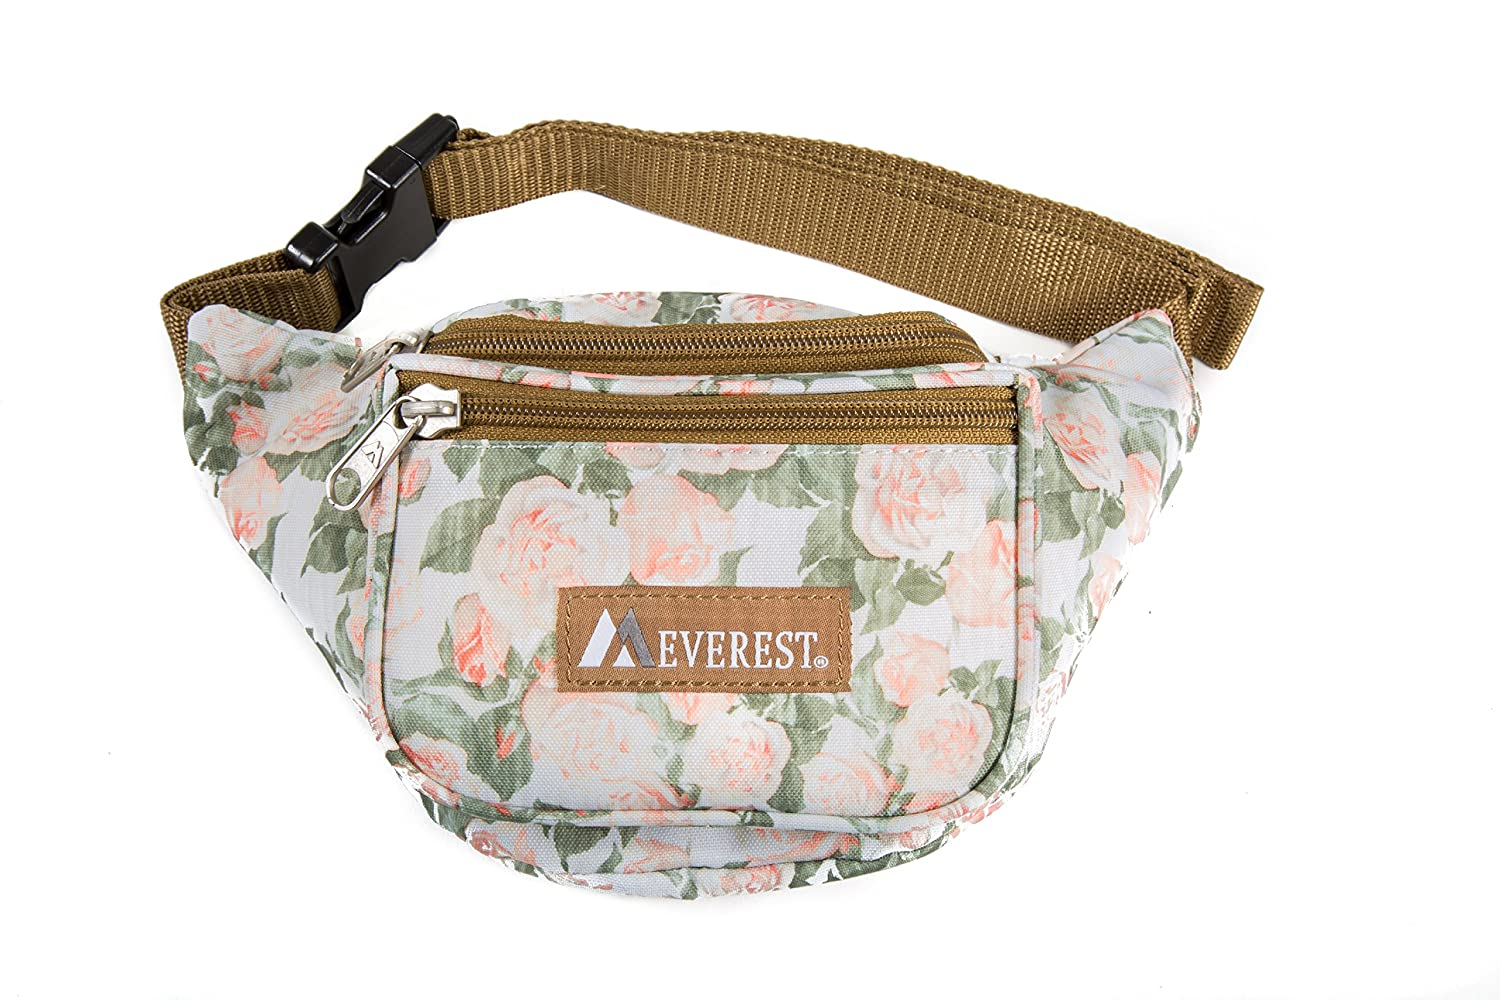 Everest P044KD-Donuts Signature Pattern Waist Pack, Donuts, One Size EVFDS